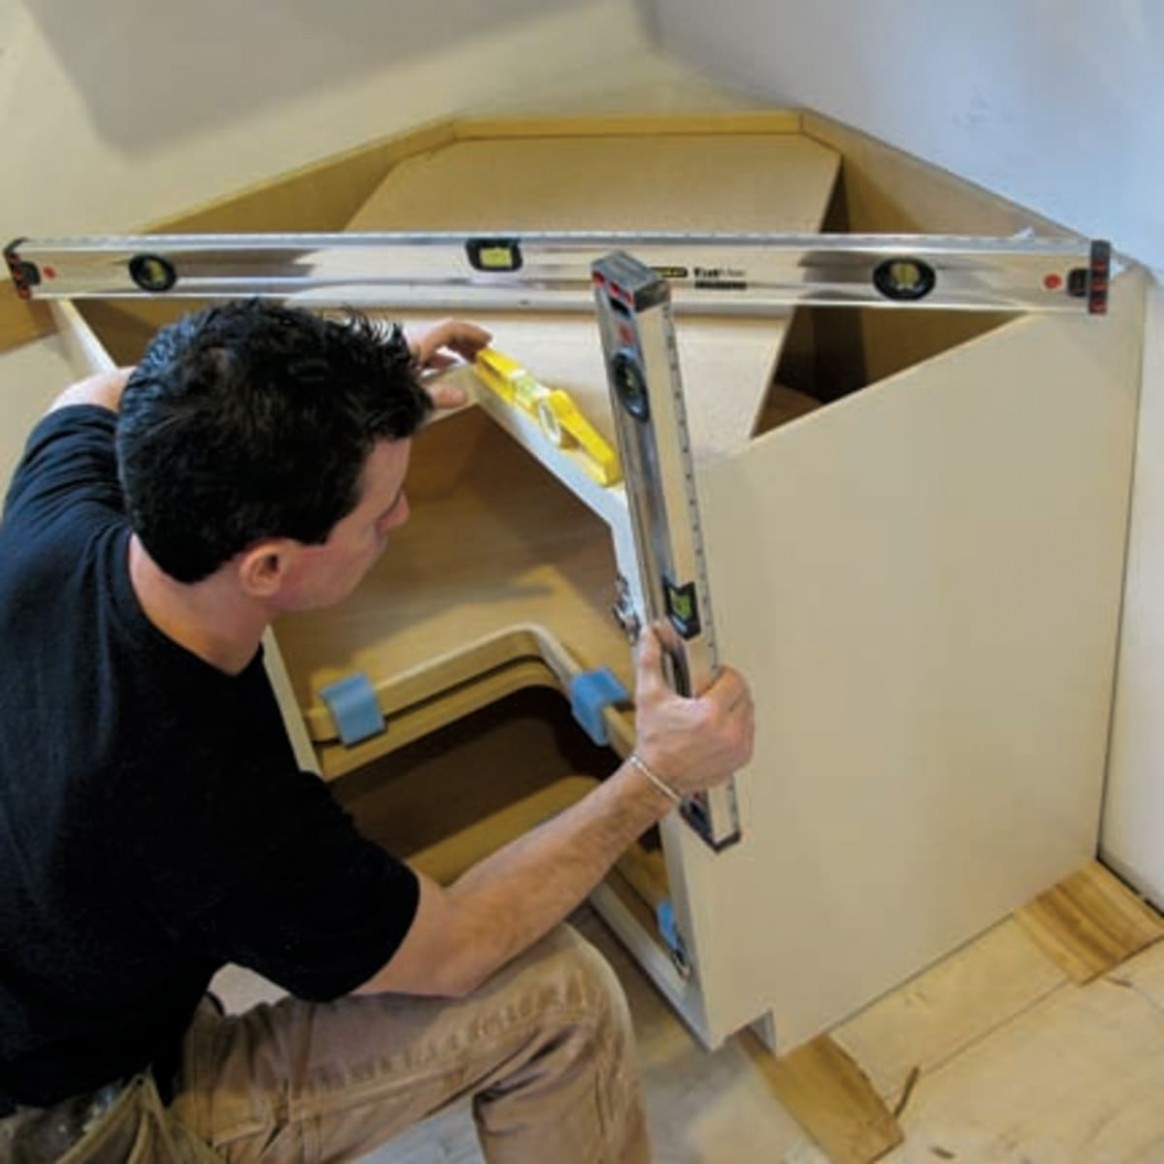 How To Install Kitchen Cabinets - Old House Journal Magazine - Kitchen Cabinets Not Level